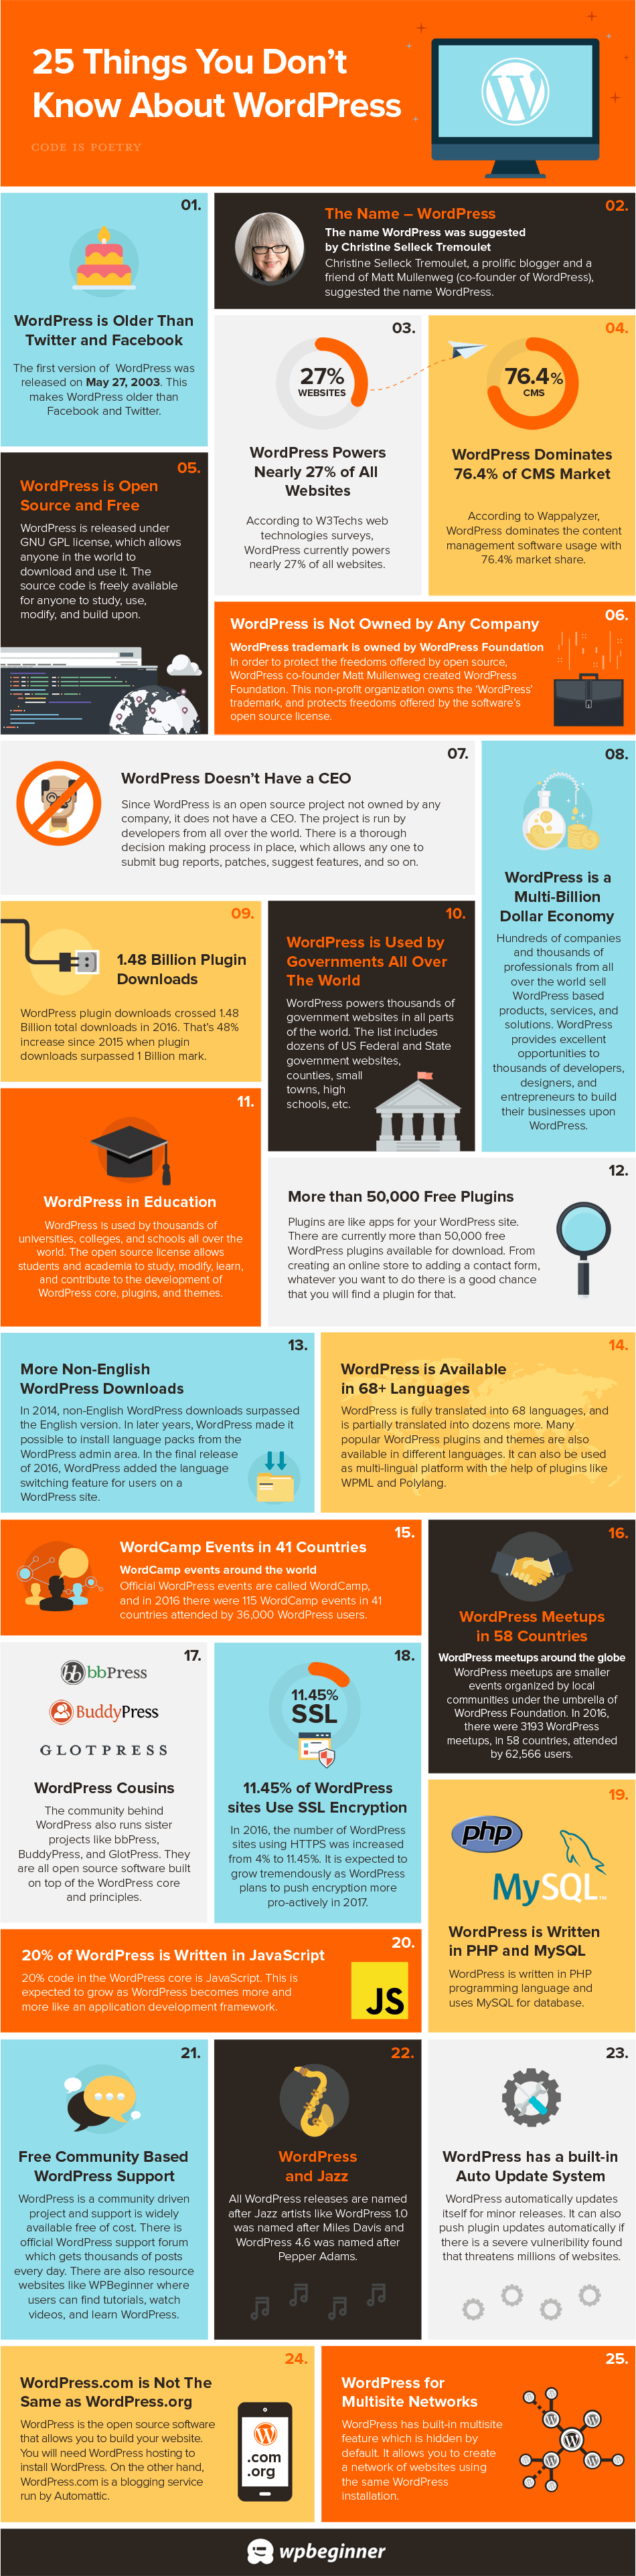 WordPress: Stats and Facts You Need to Know [Infographic]